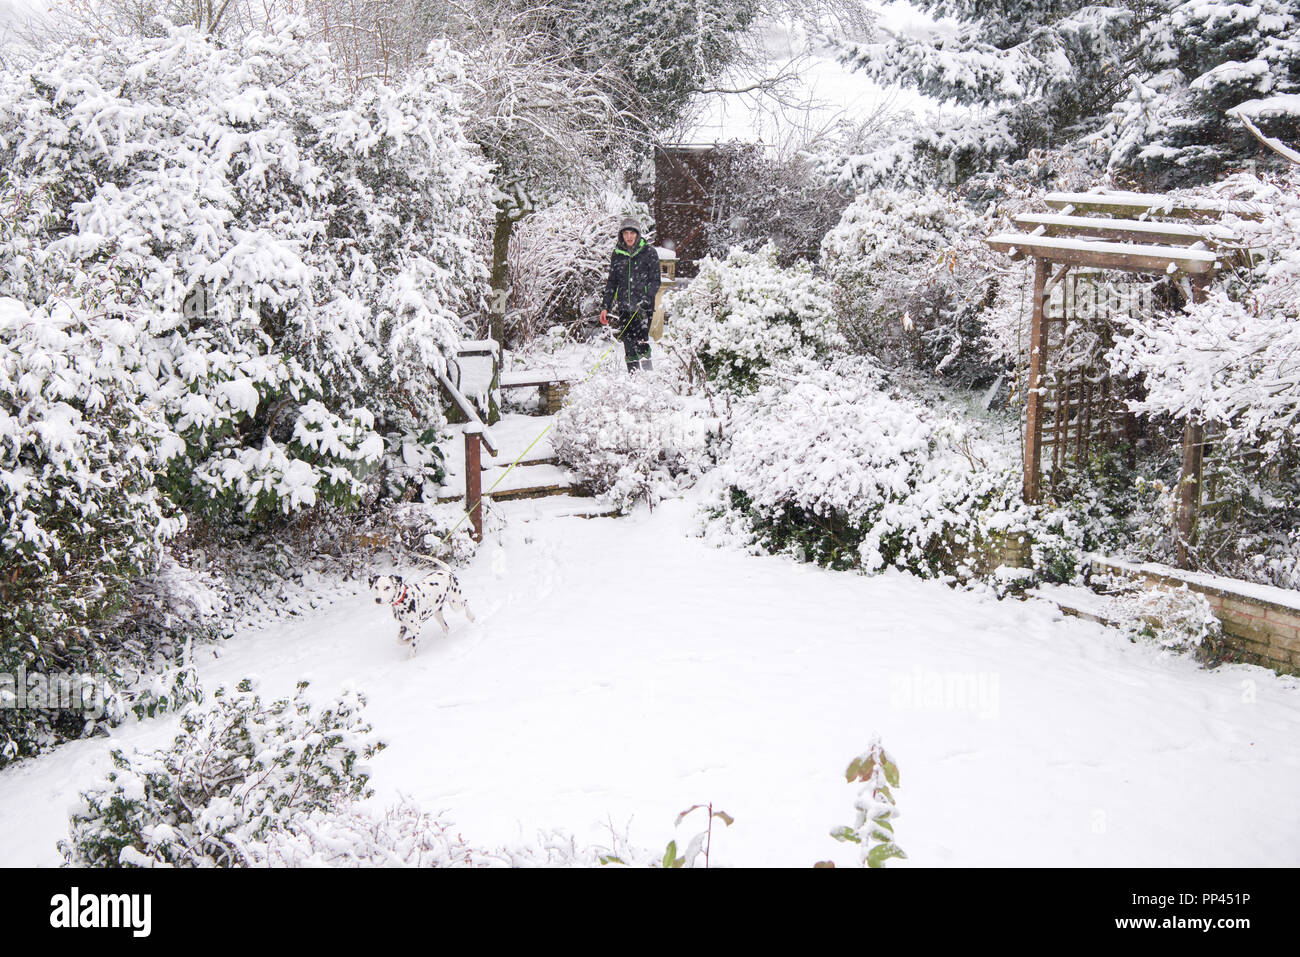 A Dalmatian dog is hard to find in a snowy English garden. Stock Photo